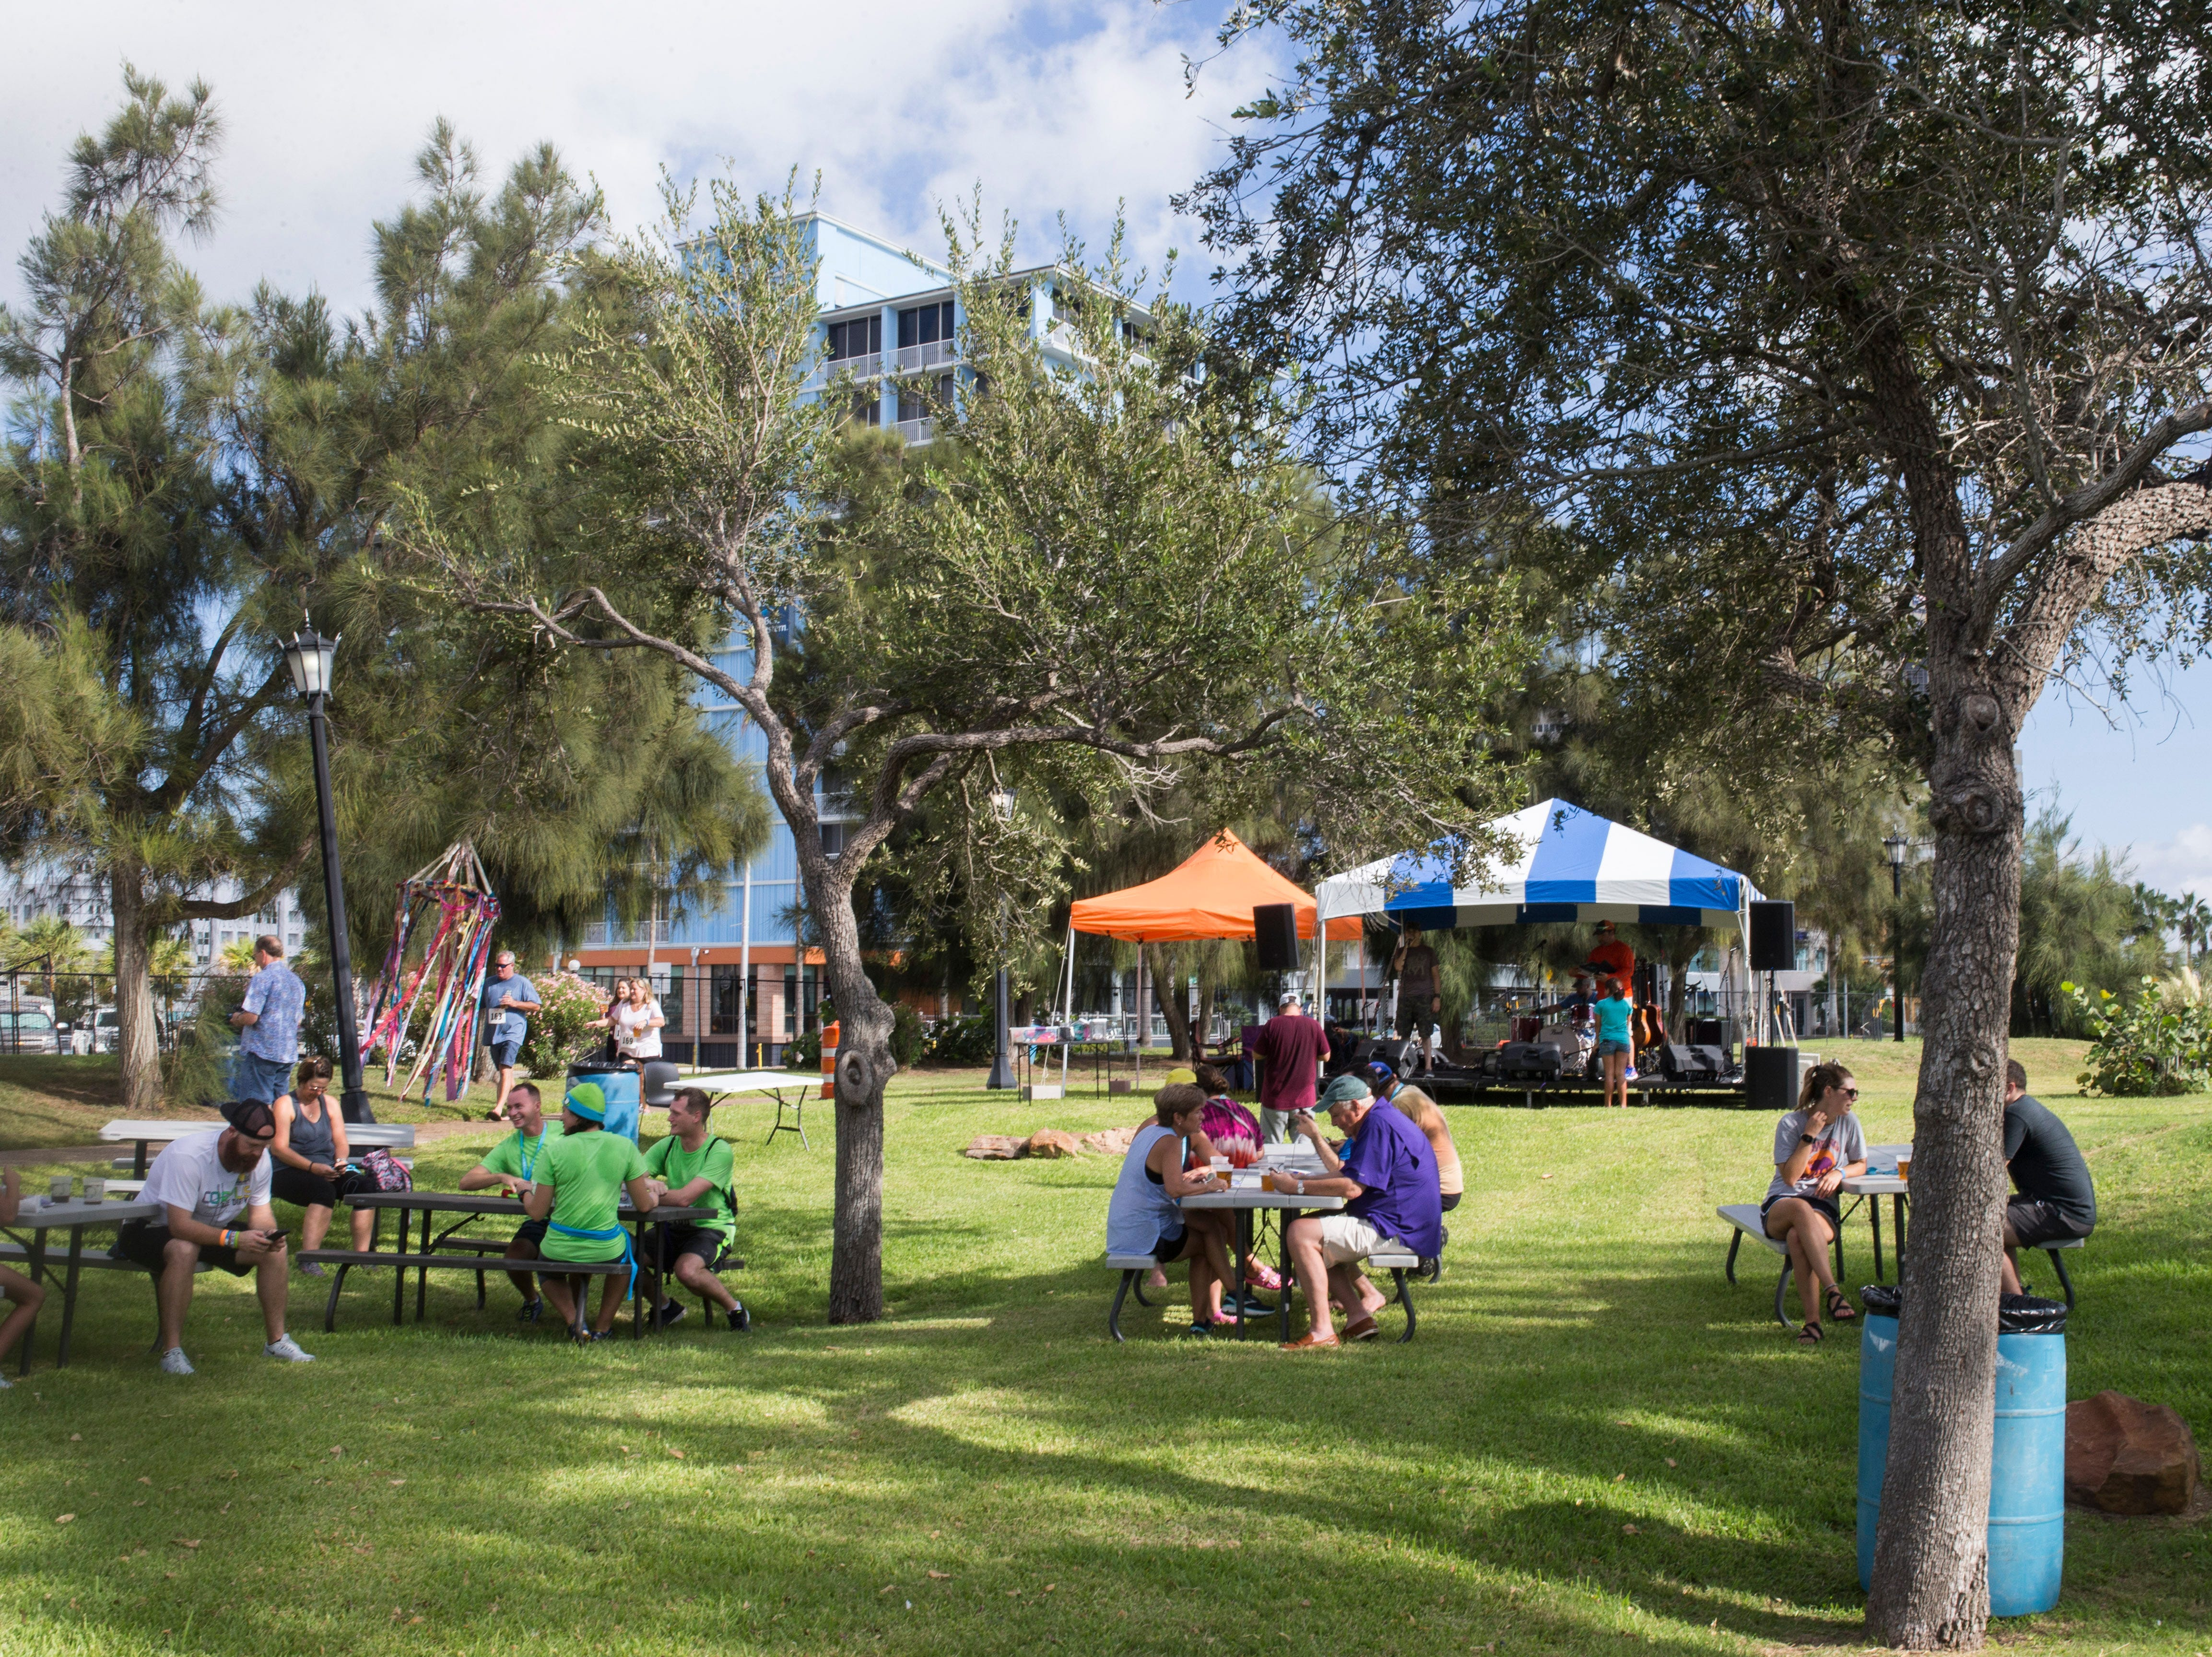 People sit in the shade and listen to music during the annual Arts Alive Festival at the Art Center of Corpus Christi on Saturday, Sep. 1, 2018.